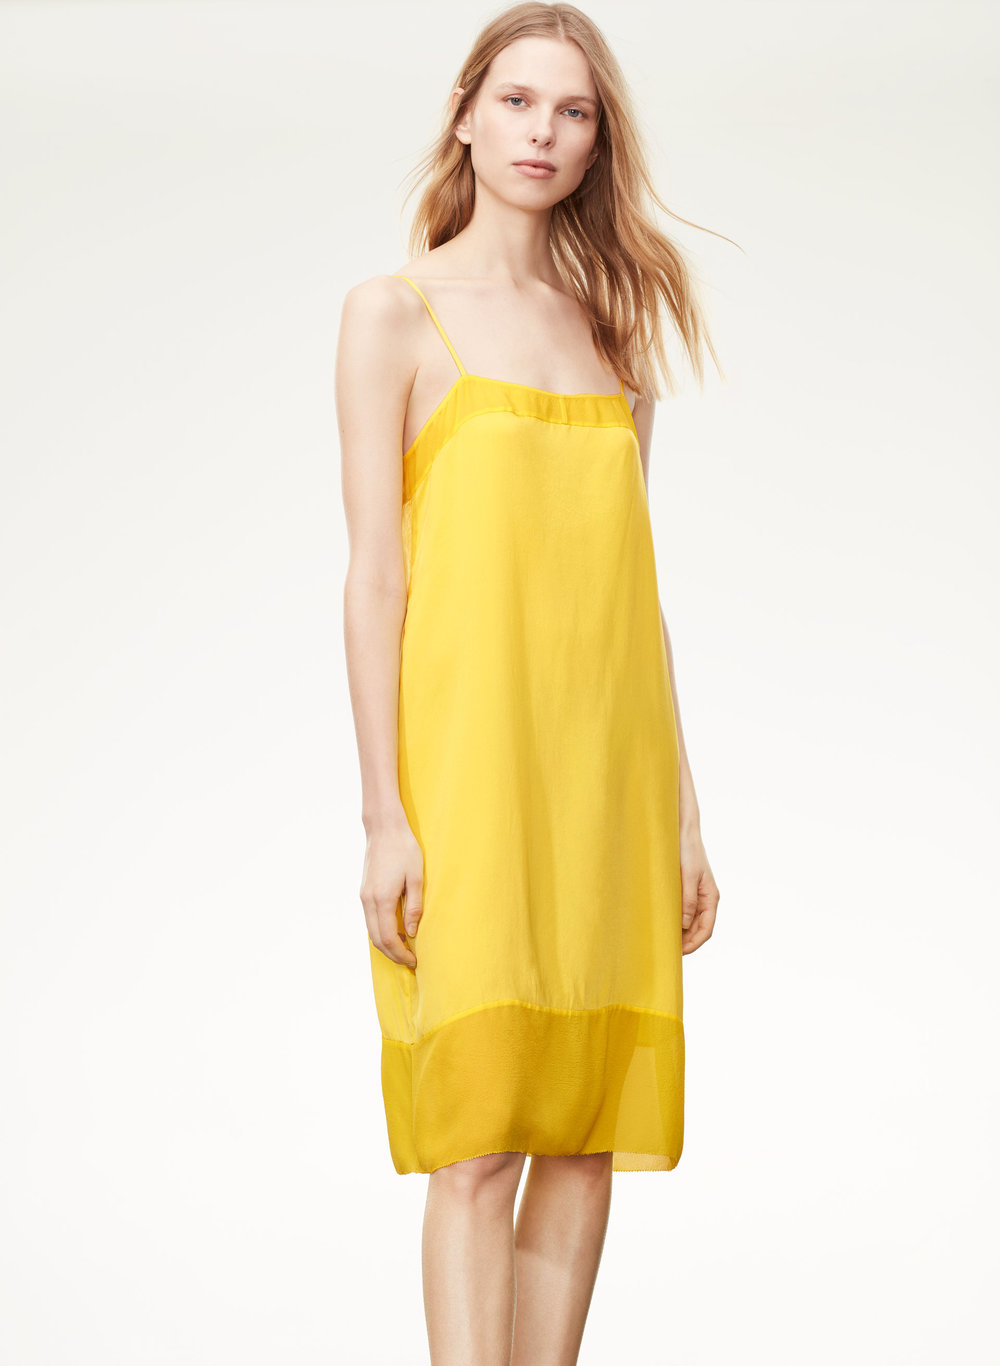 Virton Dress - Aritzia    $59.99